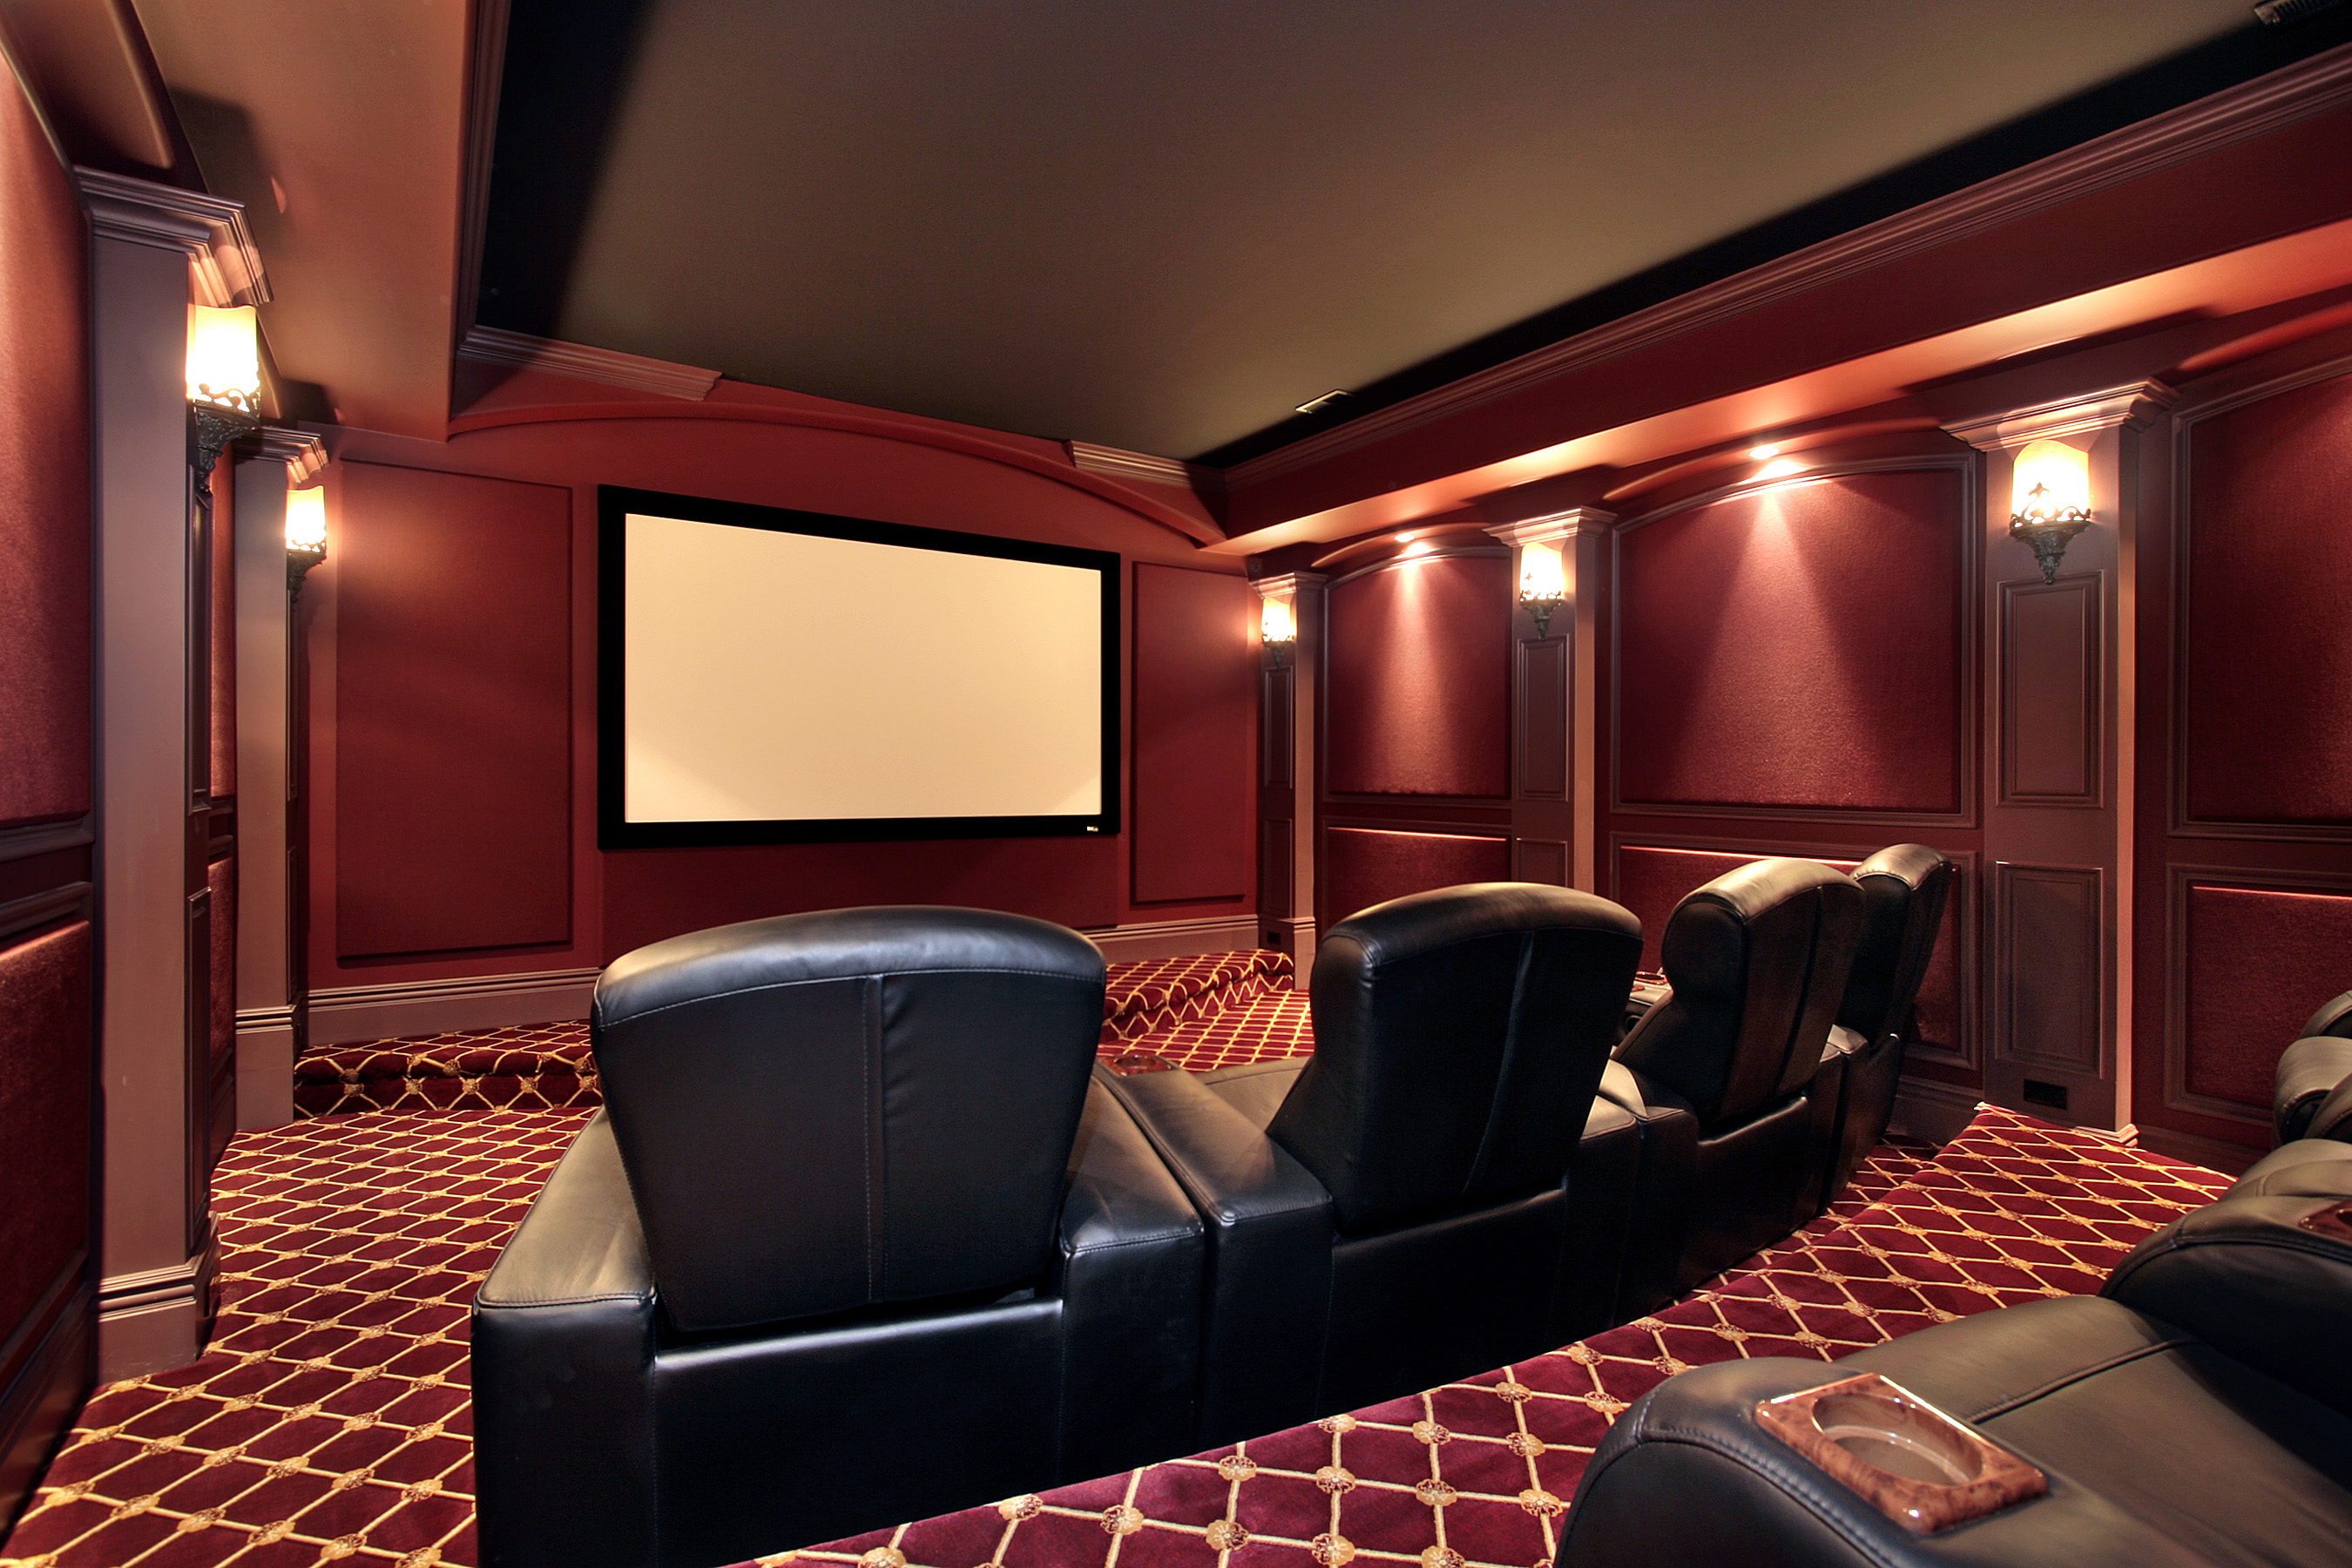 Get A Professional-Grade Theater Installed in Your Home